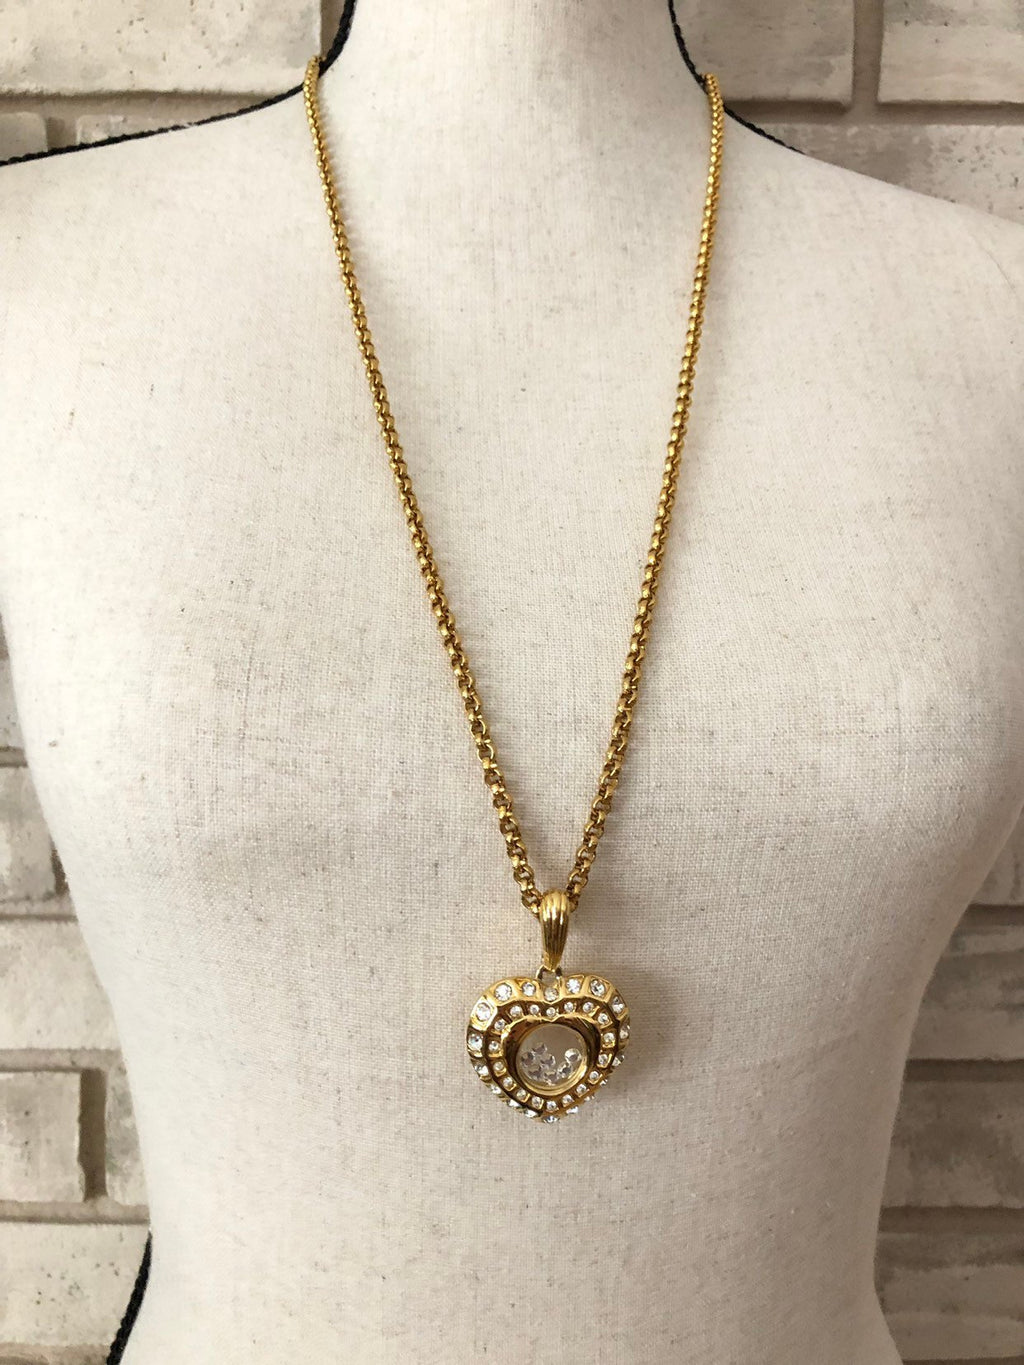 Nolan Miller Gold Long Layering Chain Rhinestone Heart Pendant-Sustainable Fashion with Vintage Style-Trending Designer Fashion-24 Wishes